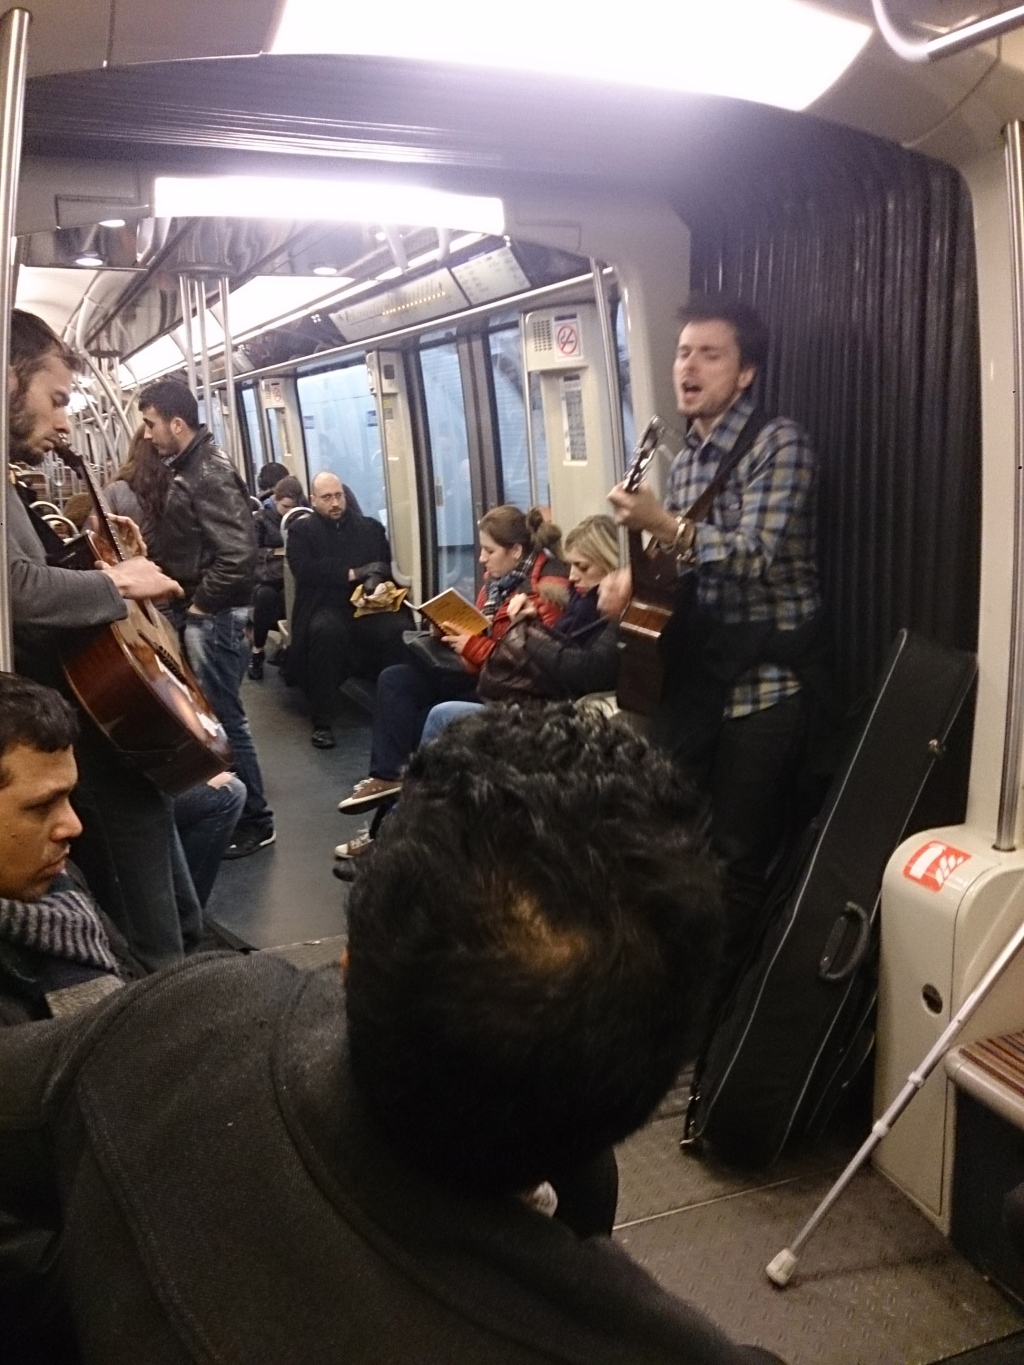 Some awesome buskers on the Metro